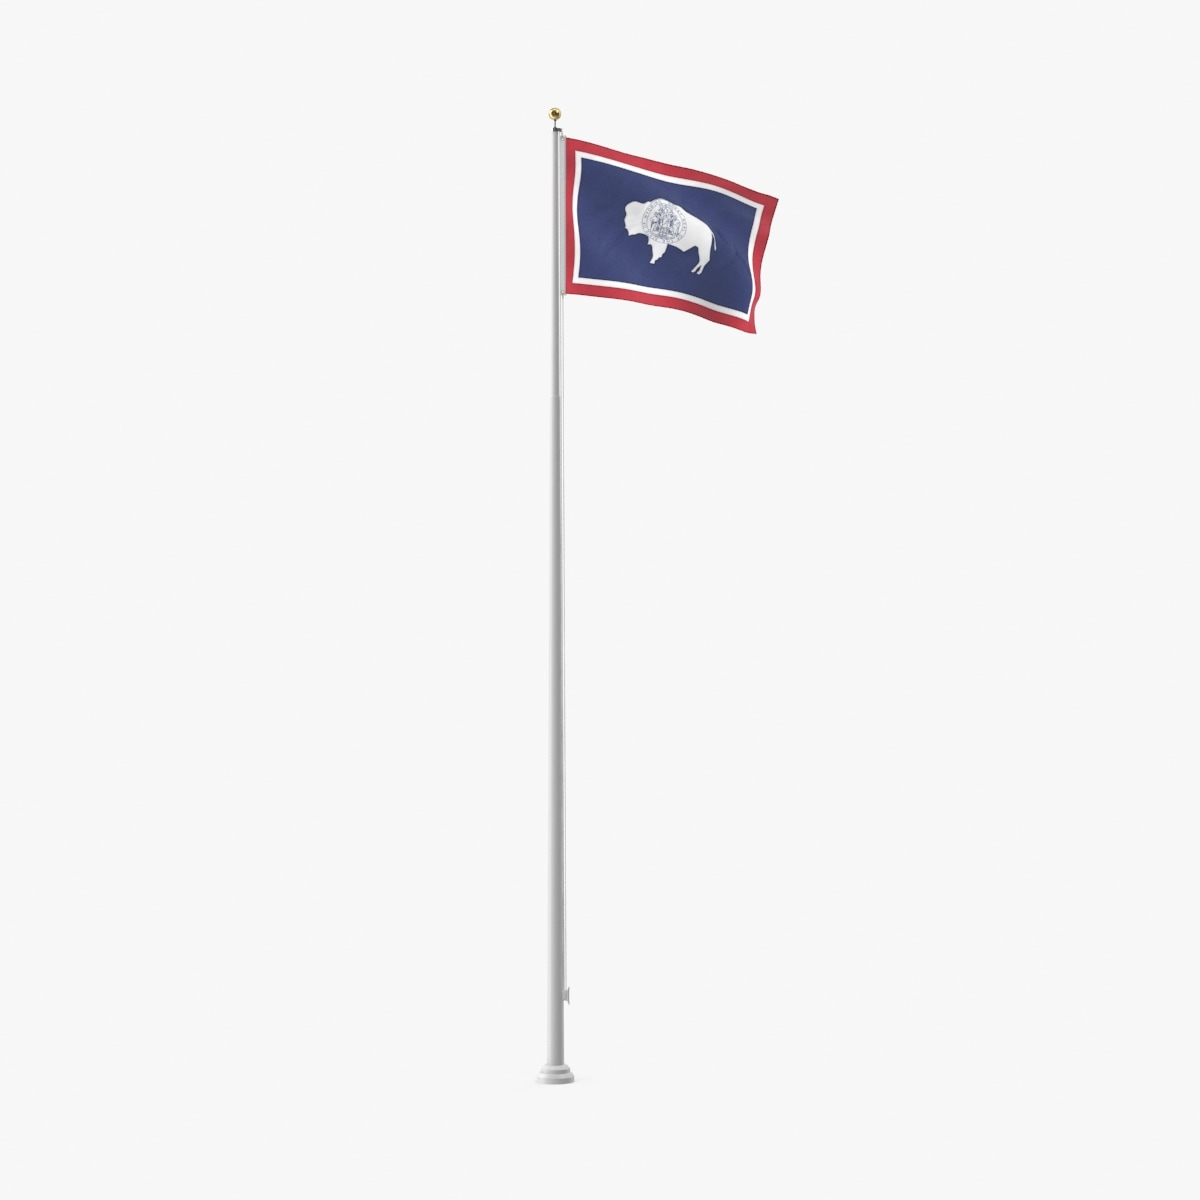 3D state-flags---wyoming model